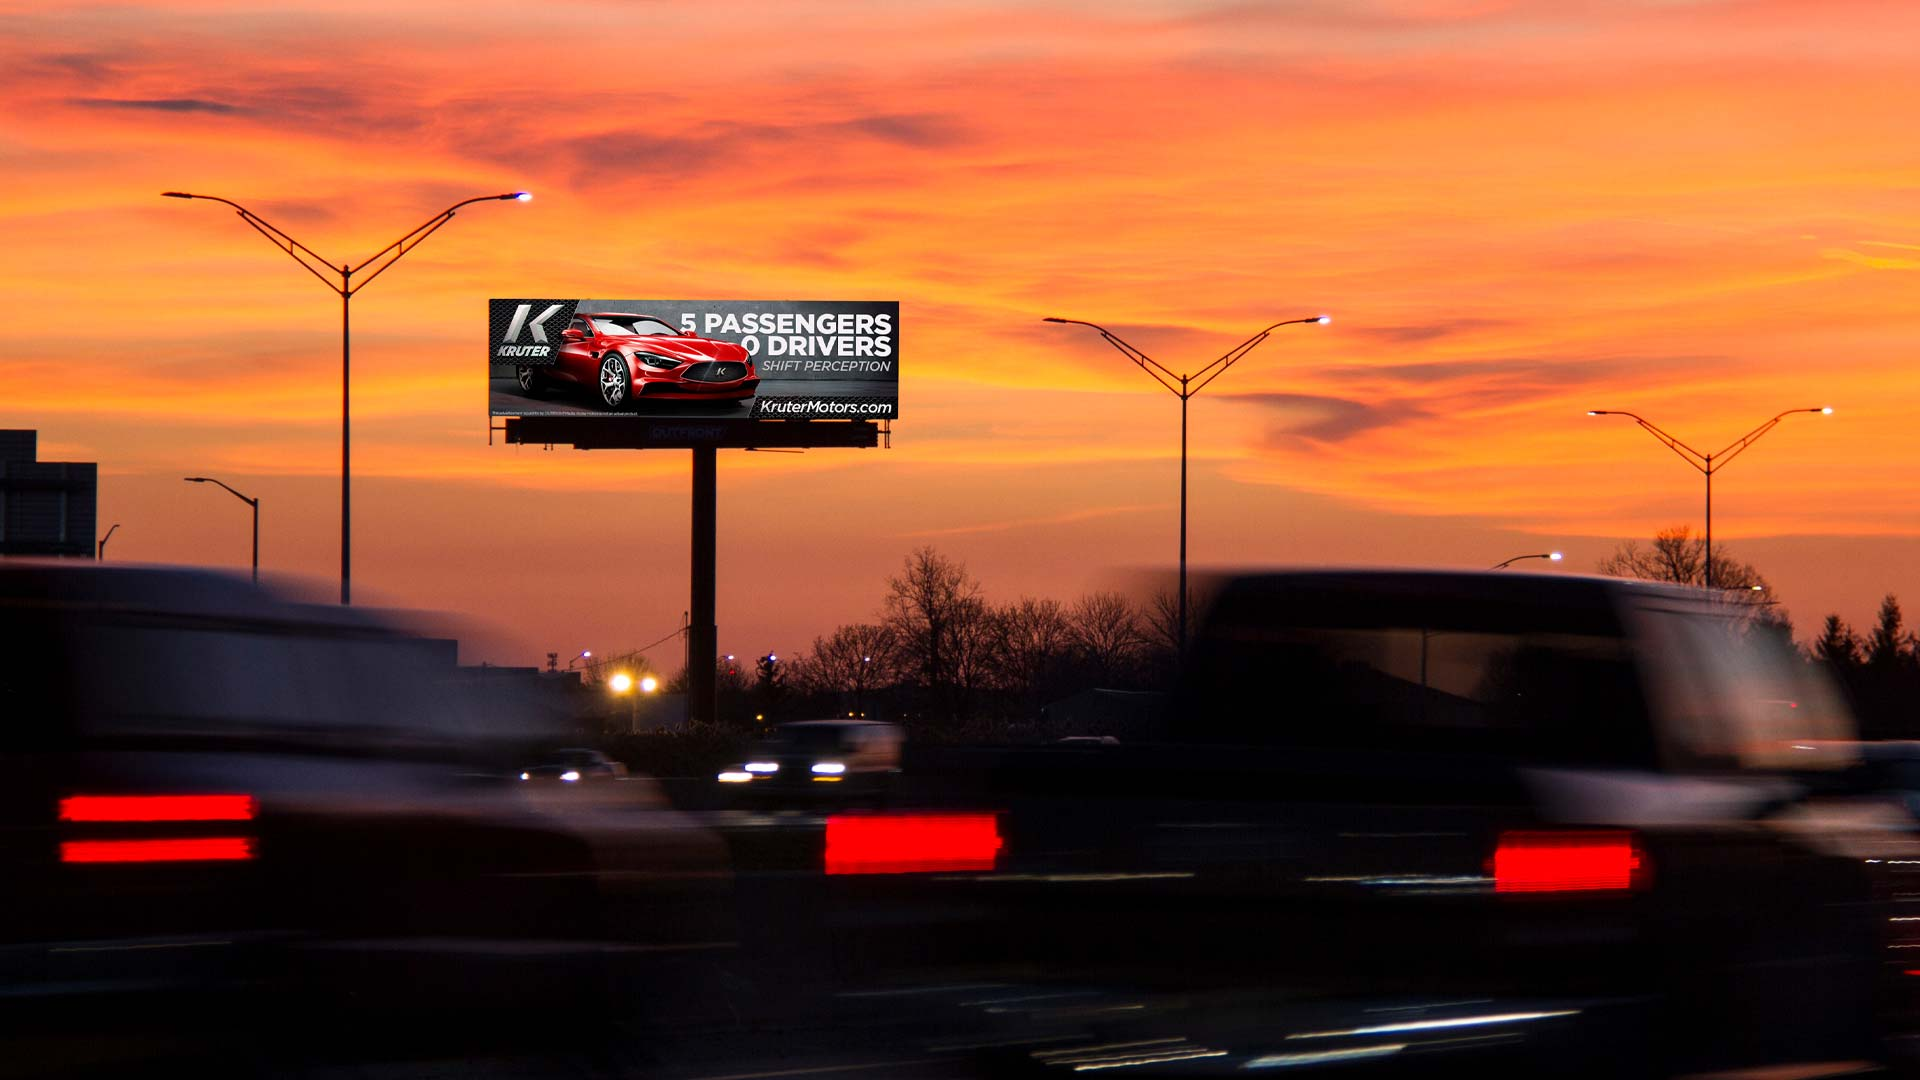 outfront studios for kruter motors digital billboard out of home advertising